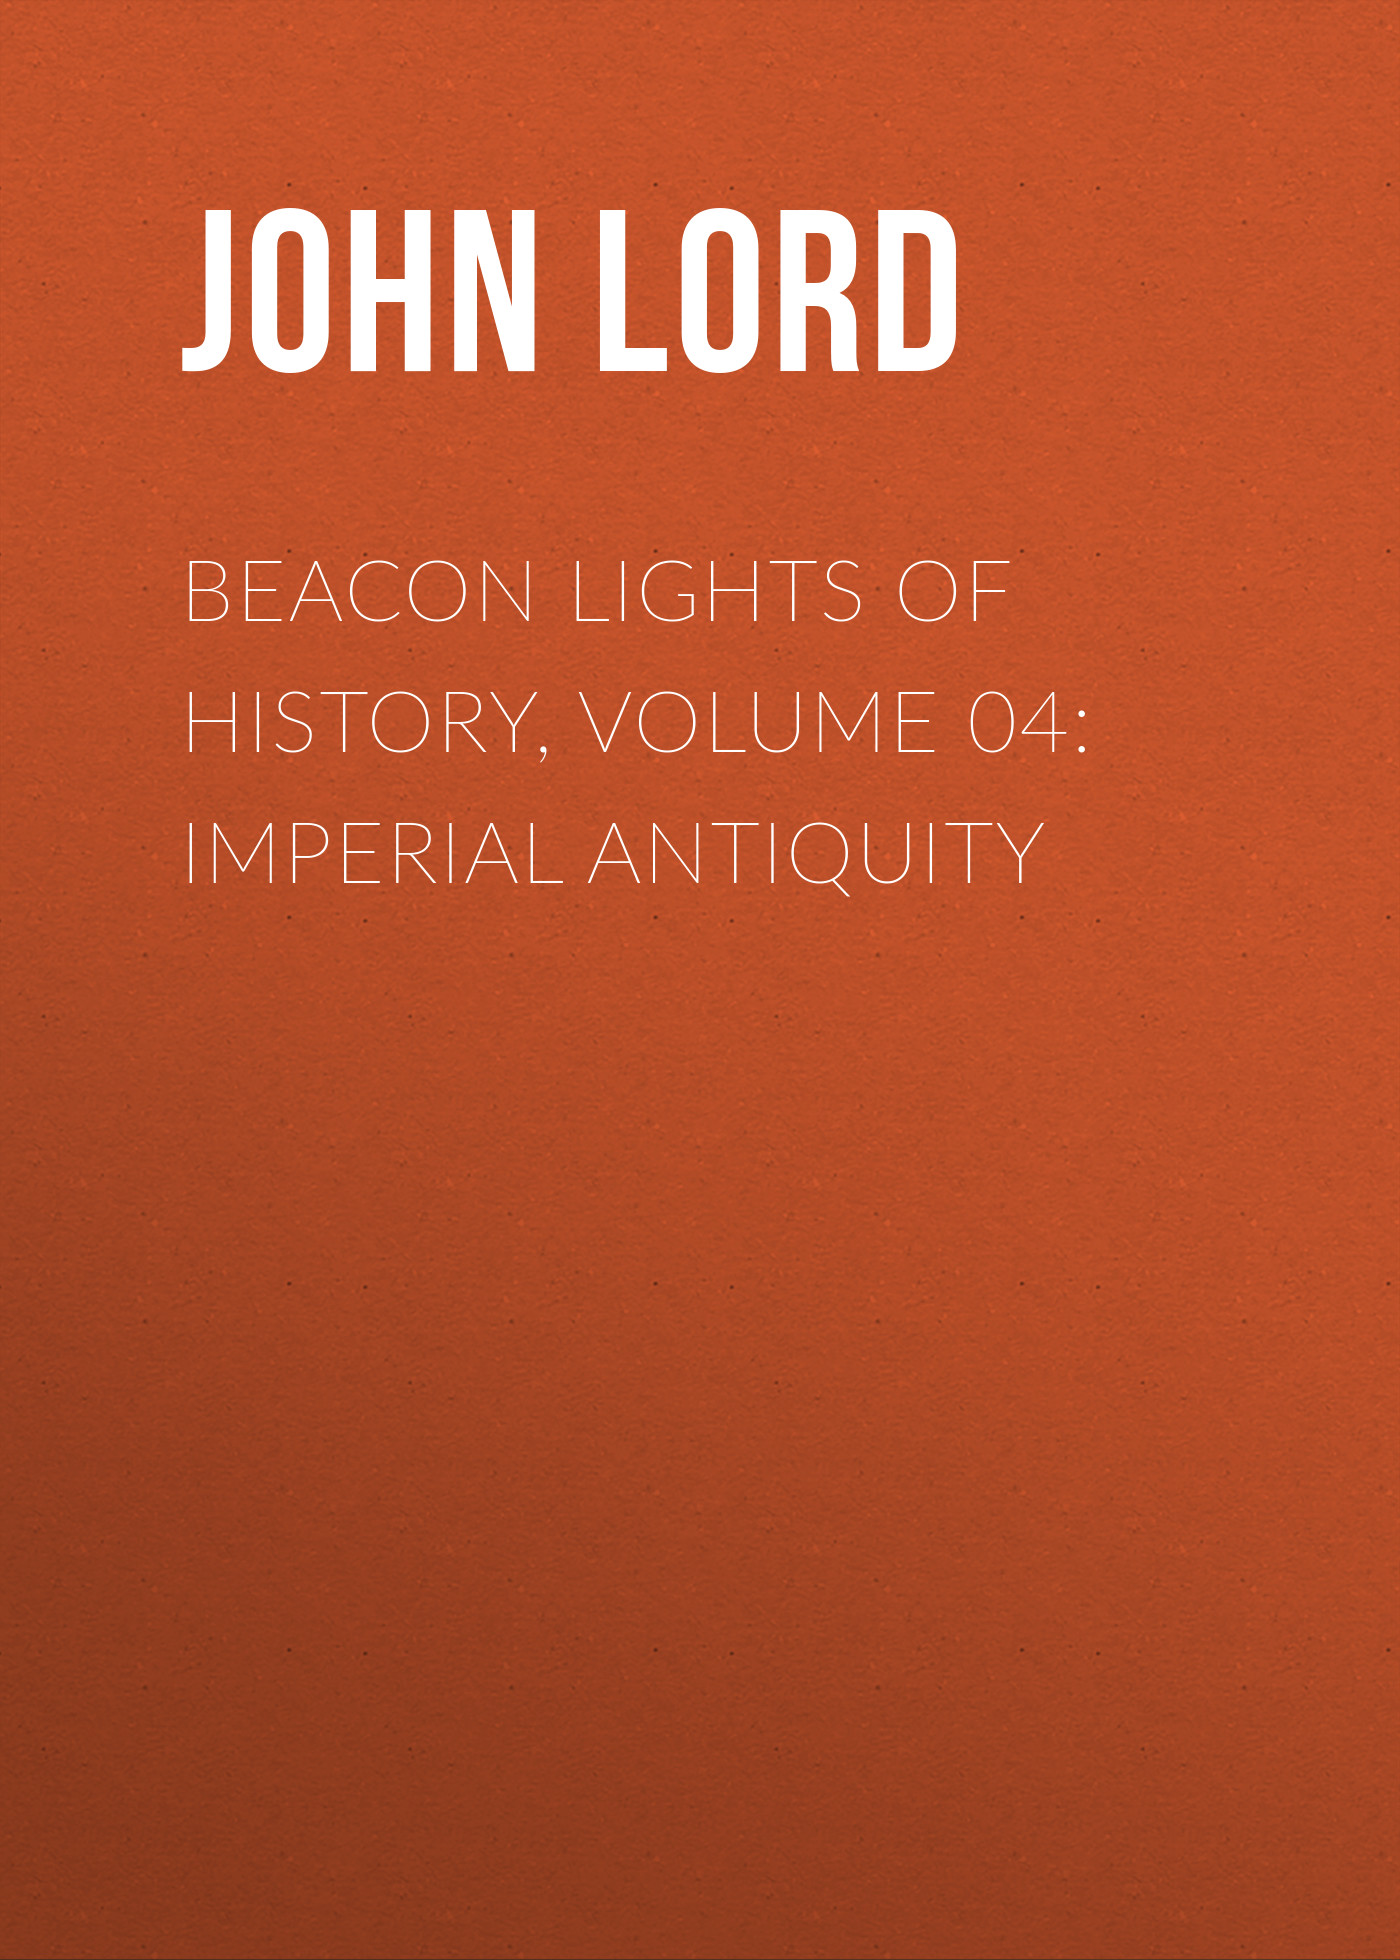 John Lord Beacon Lights of History, Volume 04: Imperial Antiquity john lord beacon lights of history volume 07 great women